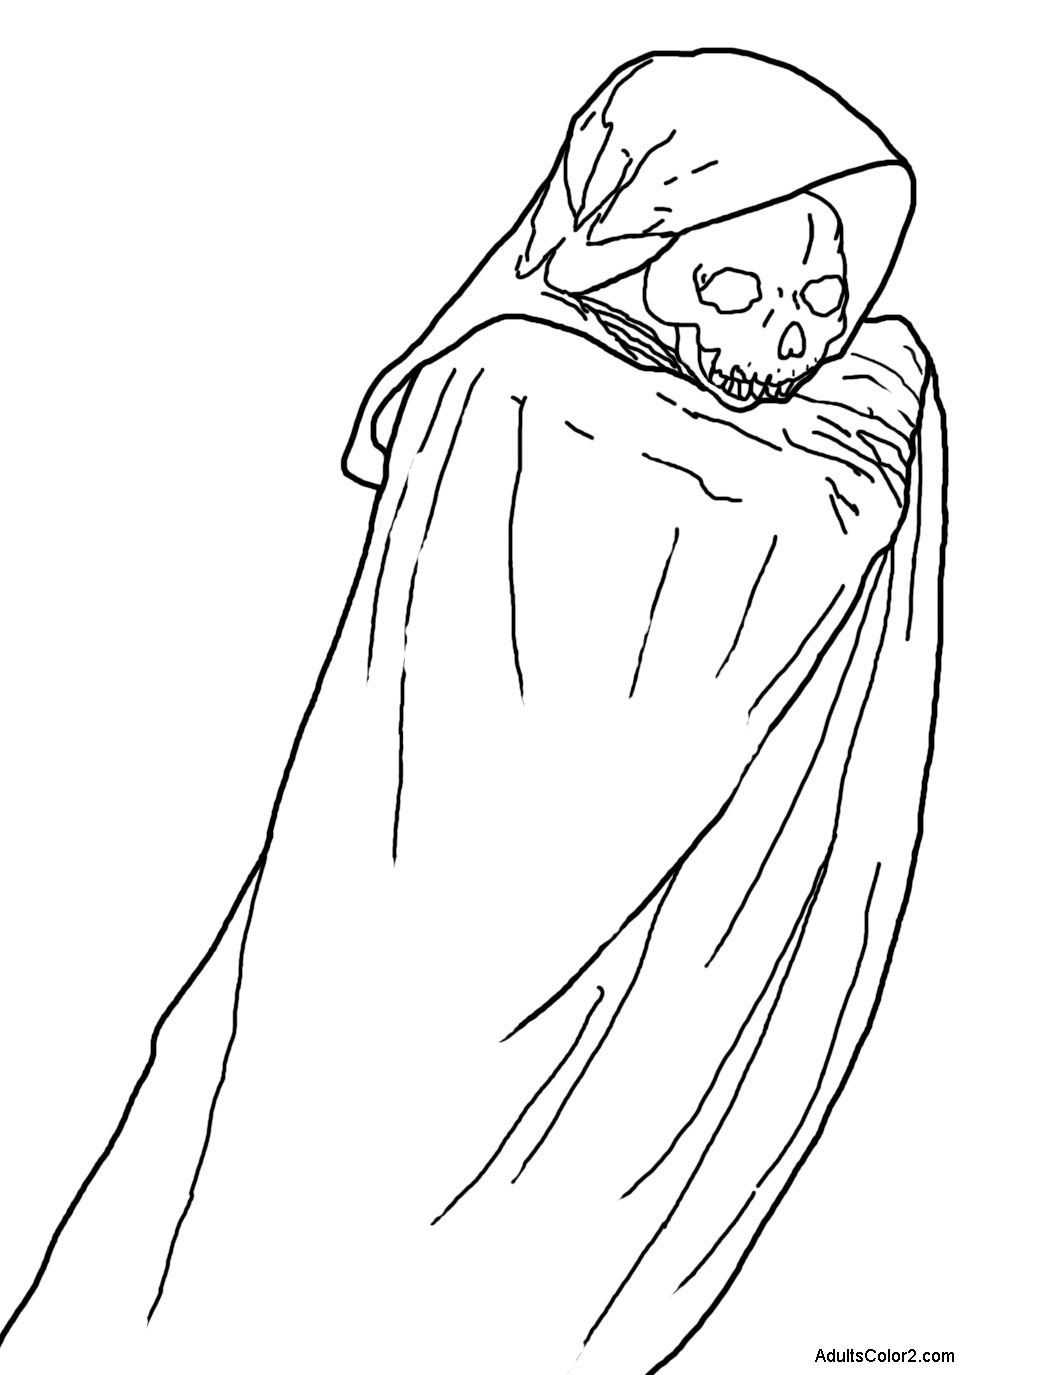 Phantom in a cape.